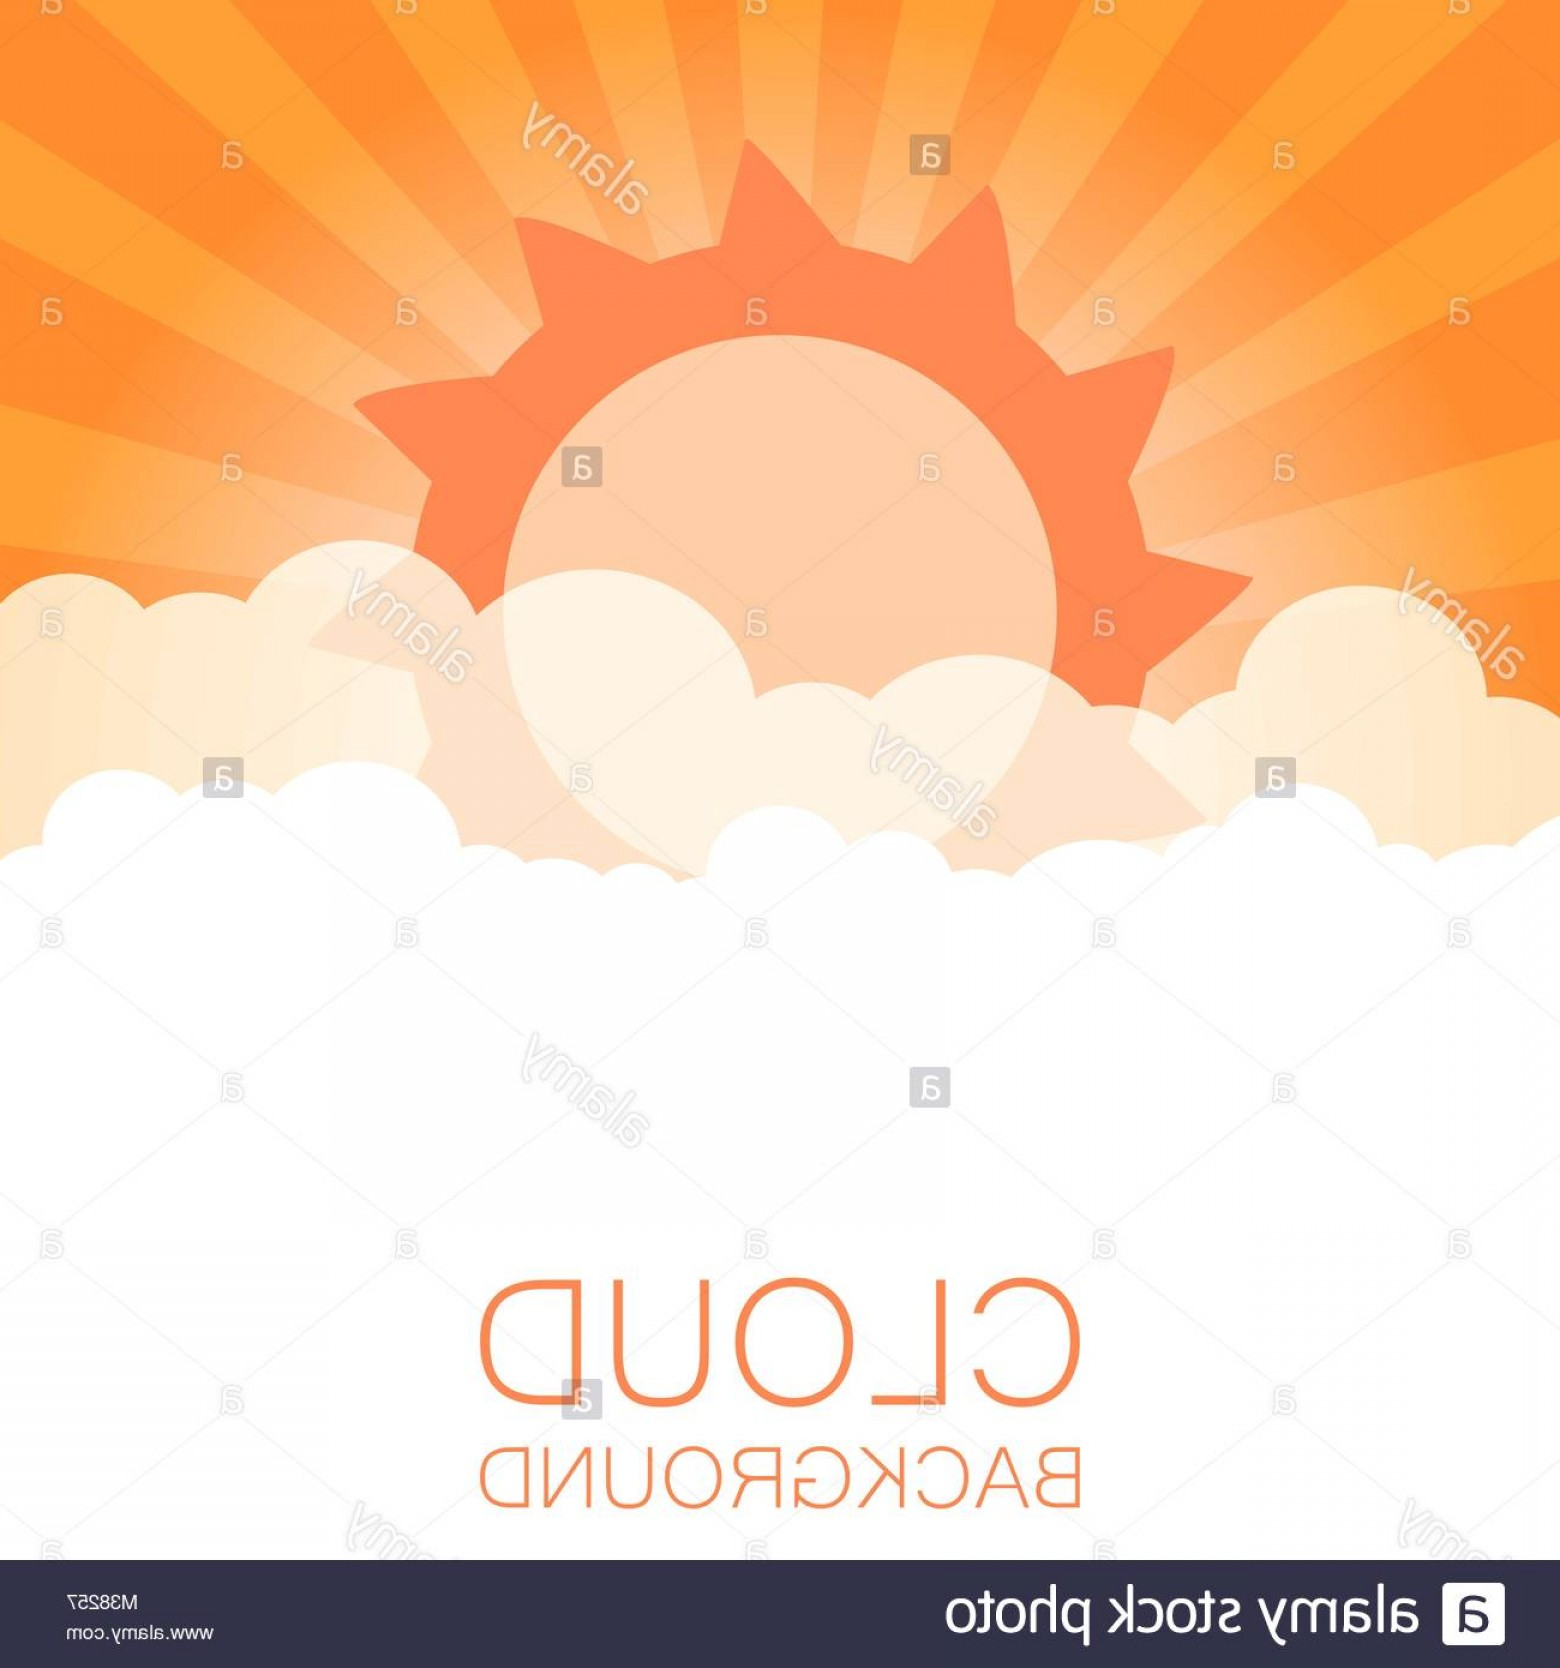 Flat Vector Background Sunset: Stock Photo Clouds In The Sky With Sun Rays Flat Vector Illustration In Cartoon